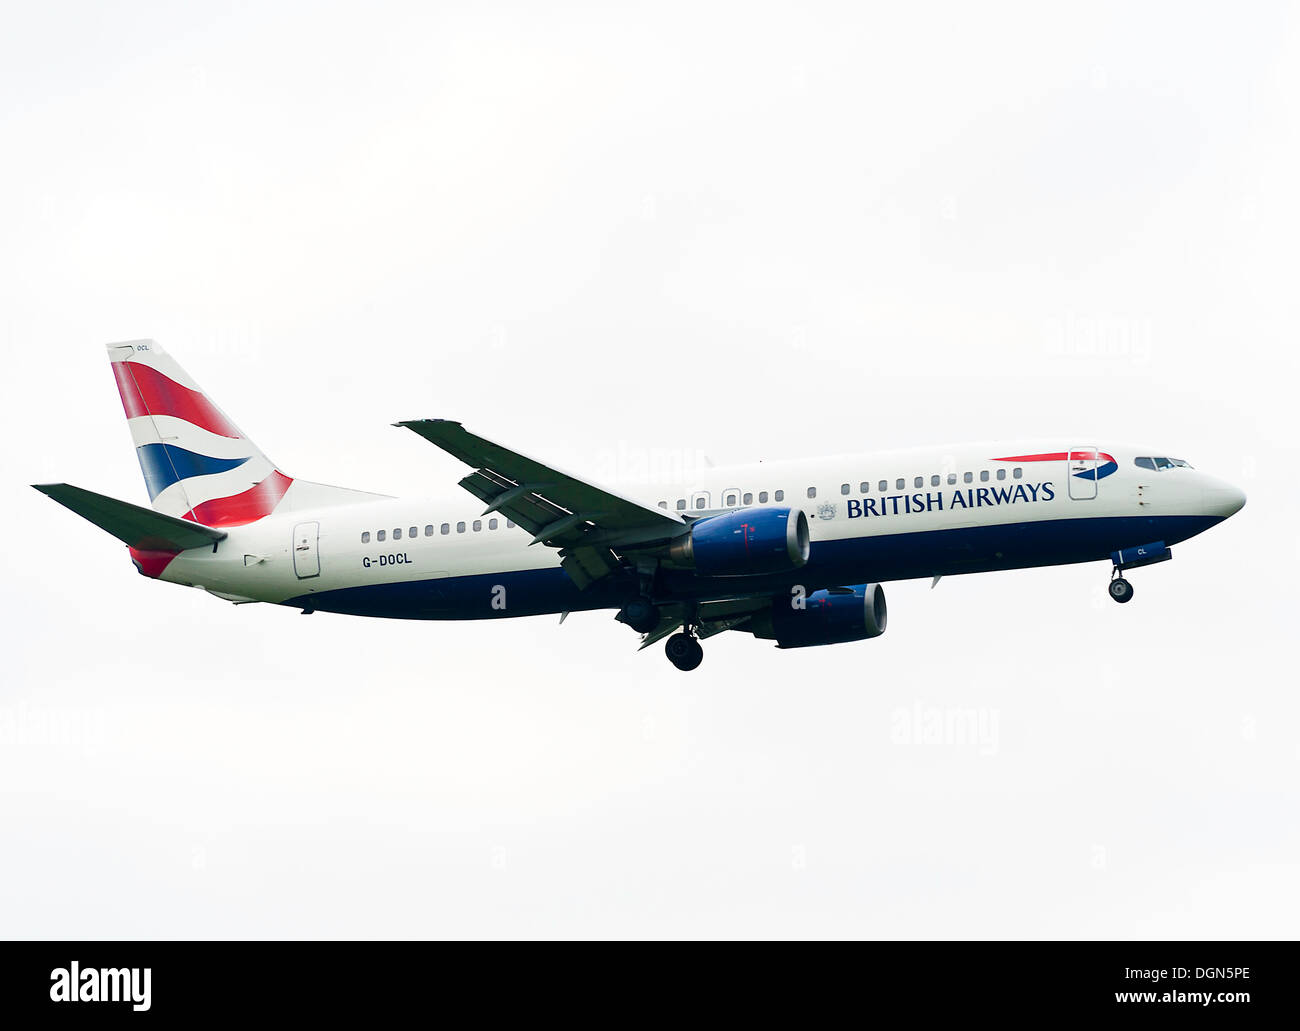 British Airways Boeing 737 Airliner G-DOCL on Landing Approach to London Gatwick Airport LGW West Sussex England United Kingdom - Stock Image